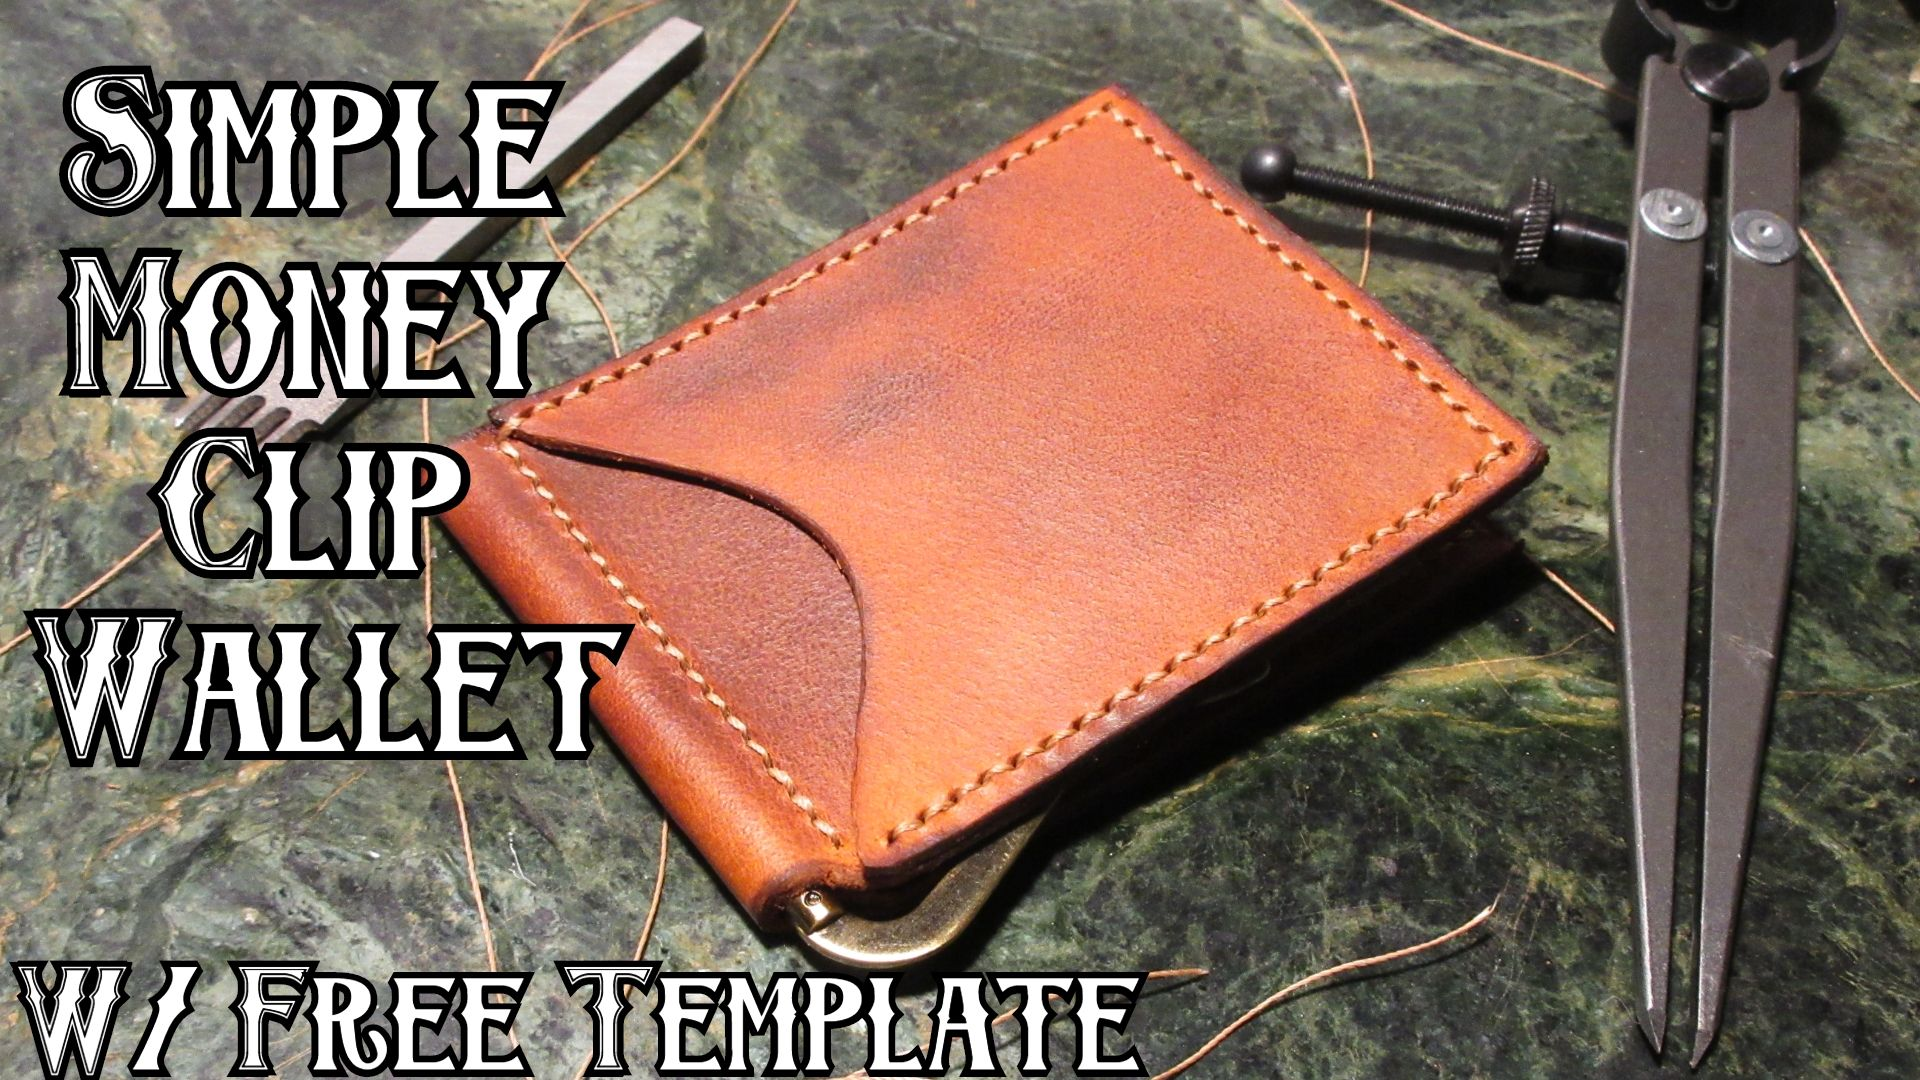 Linen Coin Purse in brown Men/'s money wallet in natural fabric Gift idea for wife Small change pouch for woman